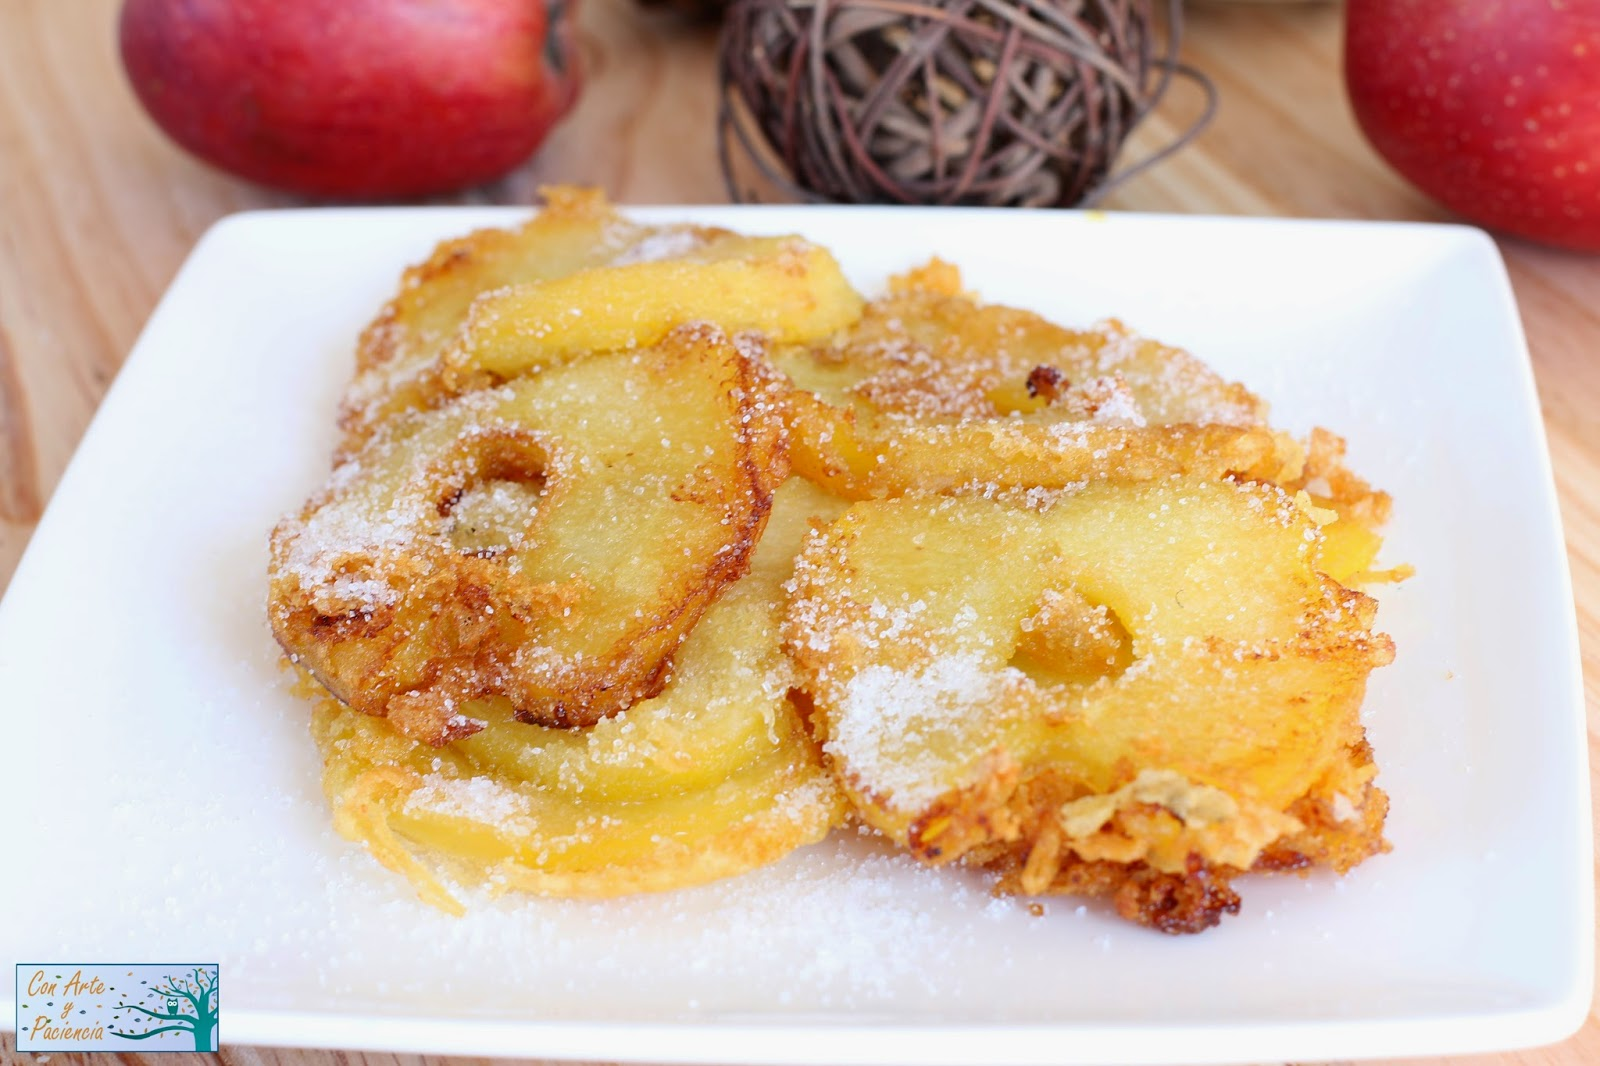 manzana,manzanas,tenaciones,facil,easy,receta,recipe,sweet,postre,apple,frita,fried,azucar,sugar,postre,dulce,aceite,oil,